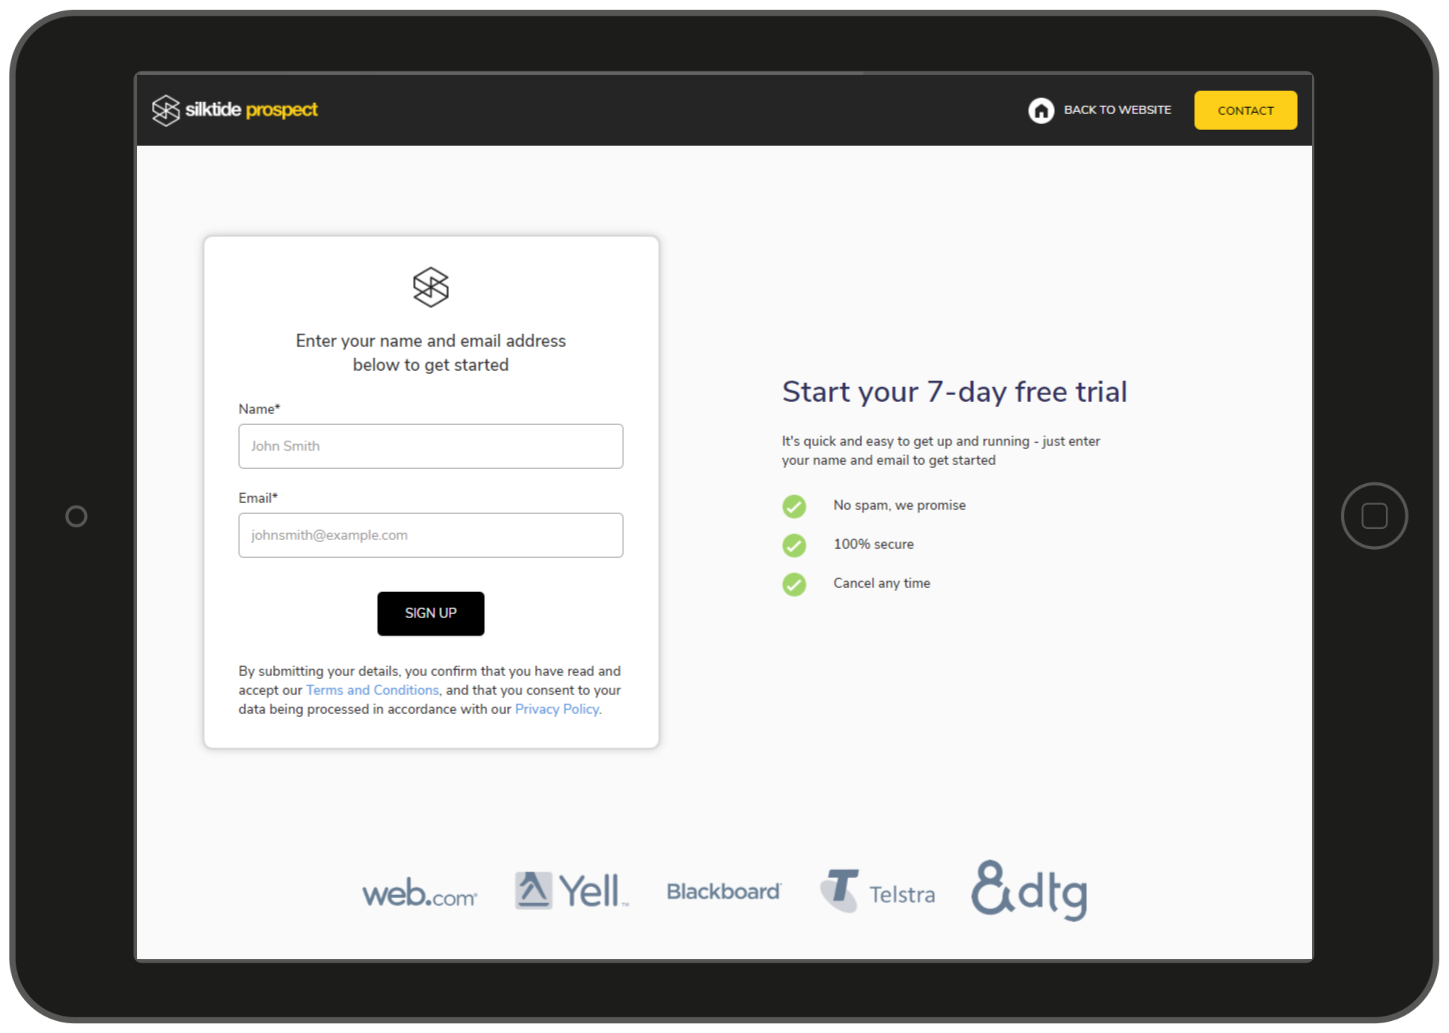 Sign up for a free 7-day trial of Silktide Prospect